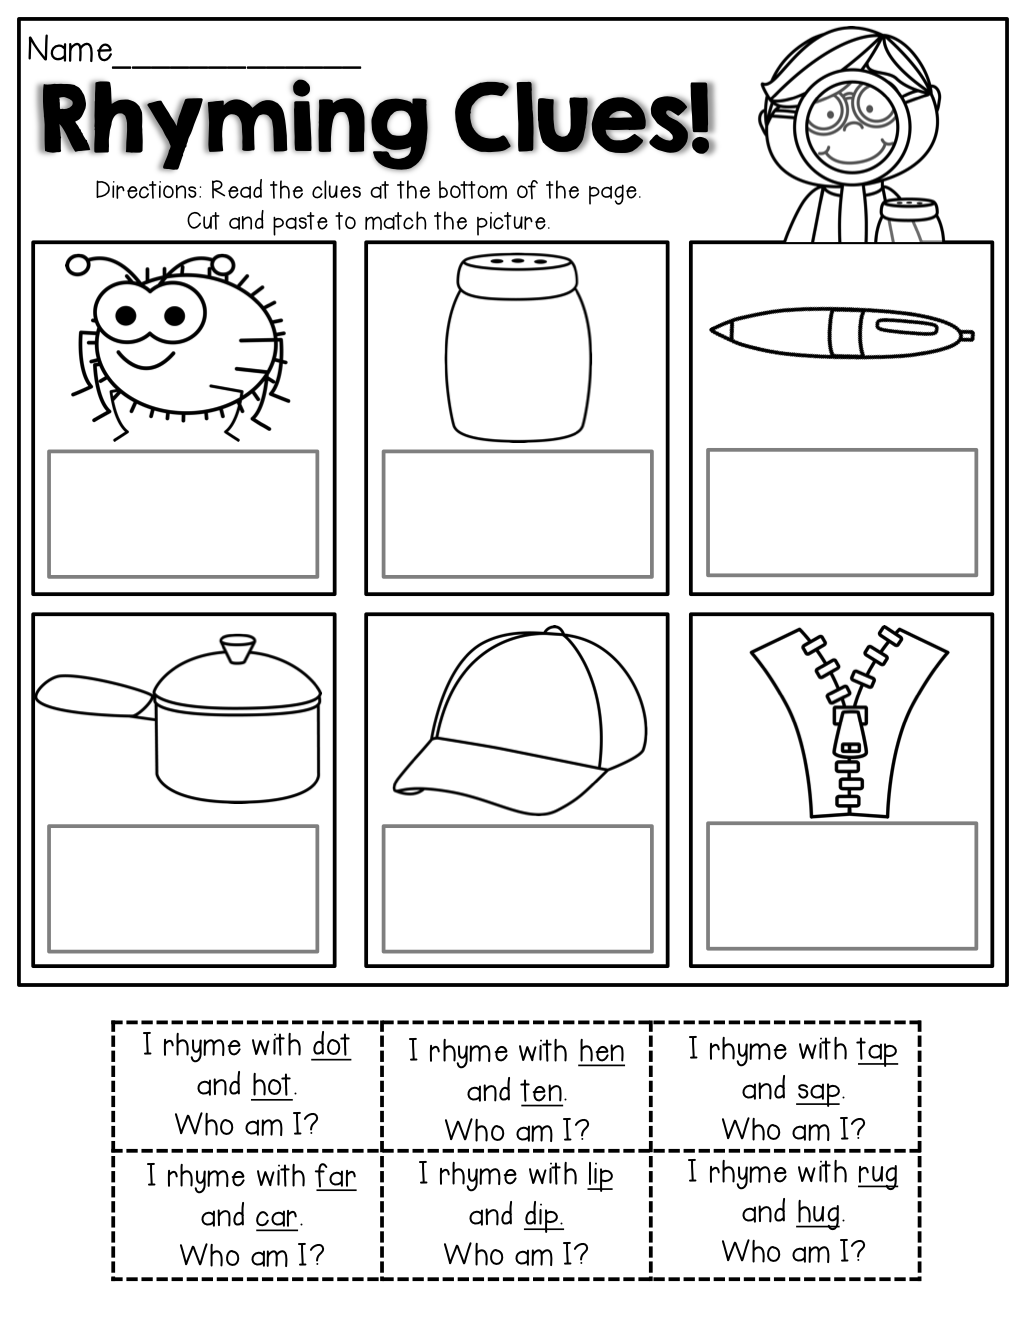 Read The Simple Clues That Have Rhyming Words Match The Picture Great For Beginning Readers